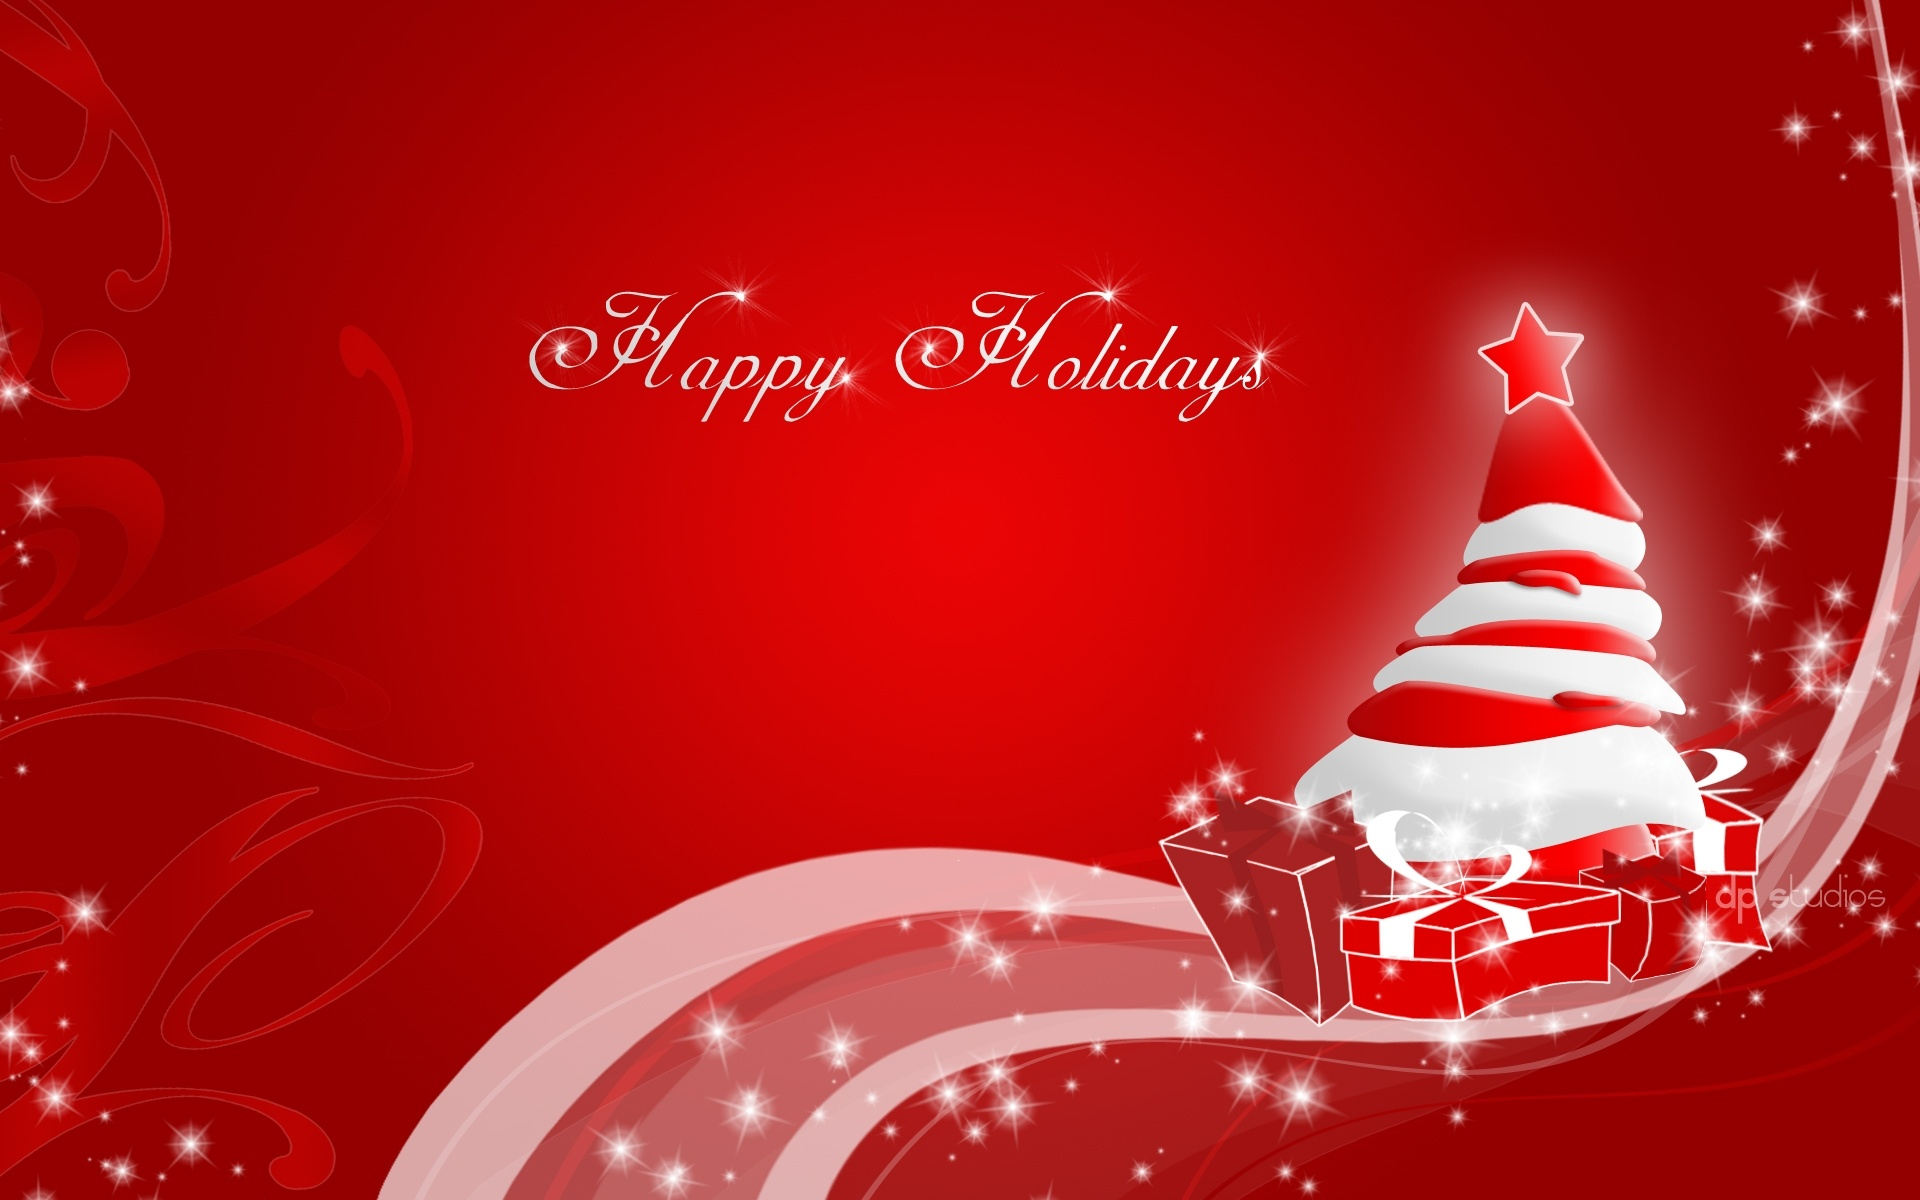 Happy Holidays Christmas Wallpapers in jpg format for free download